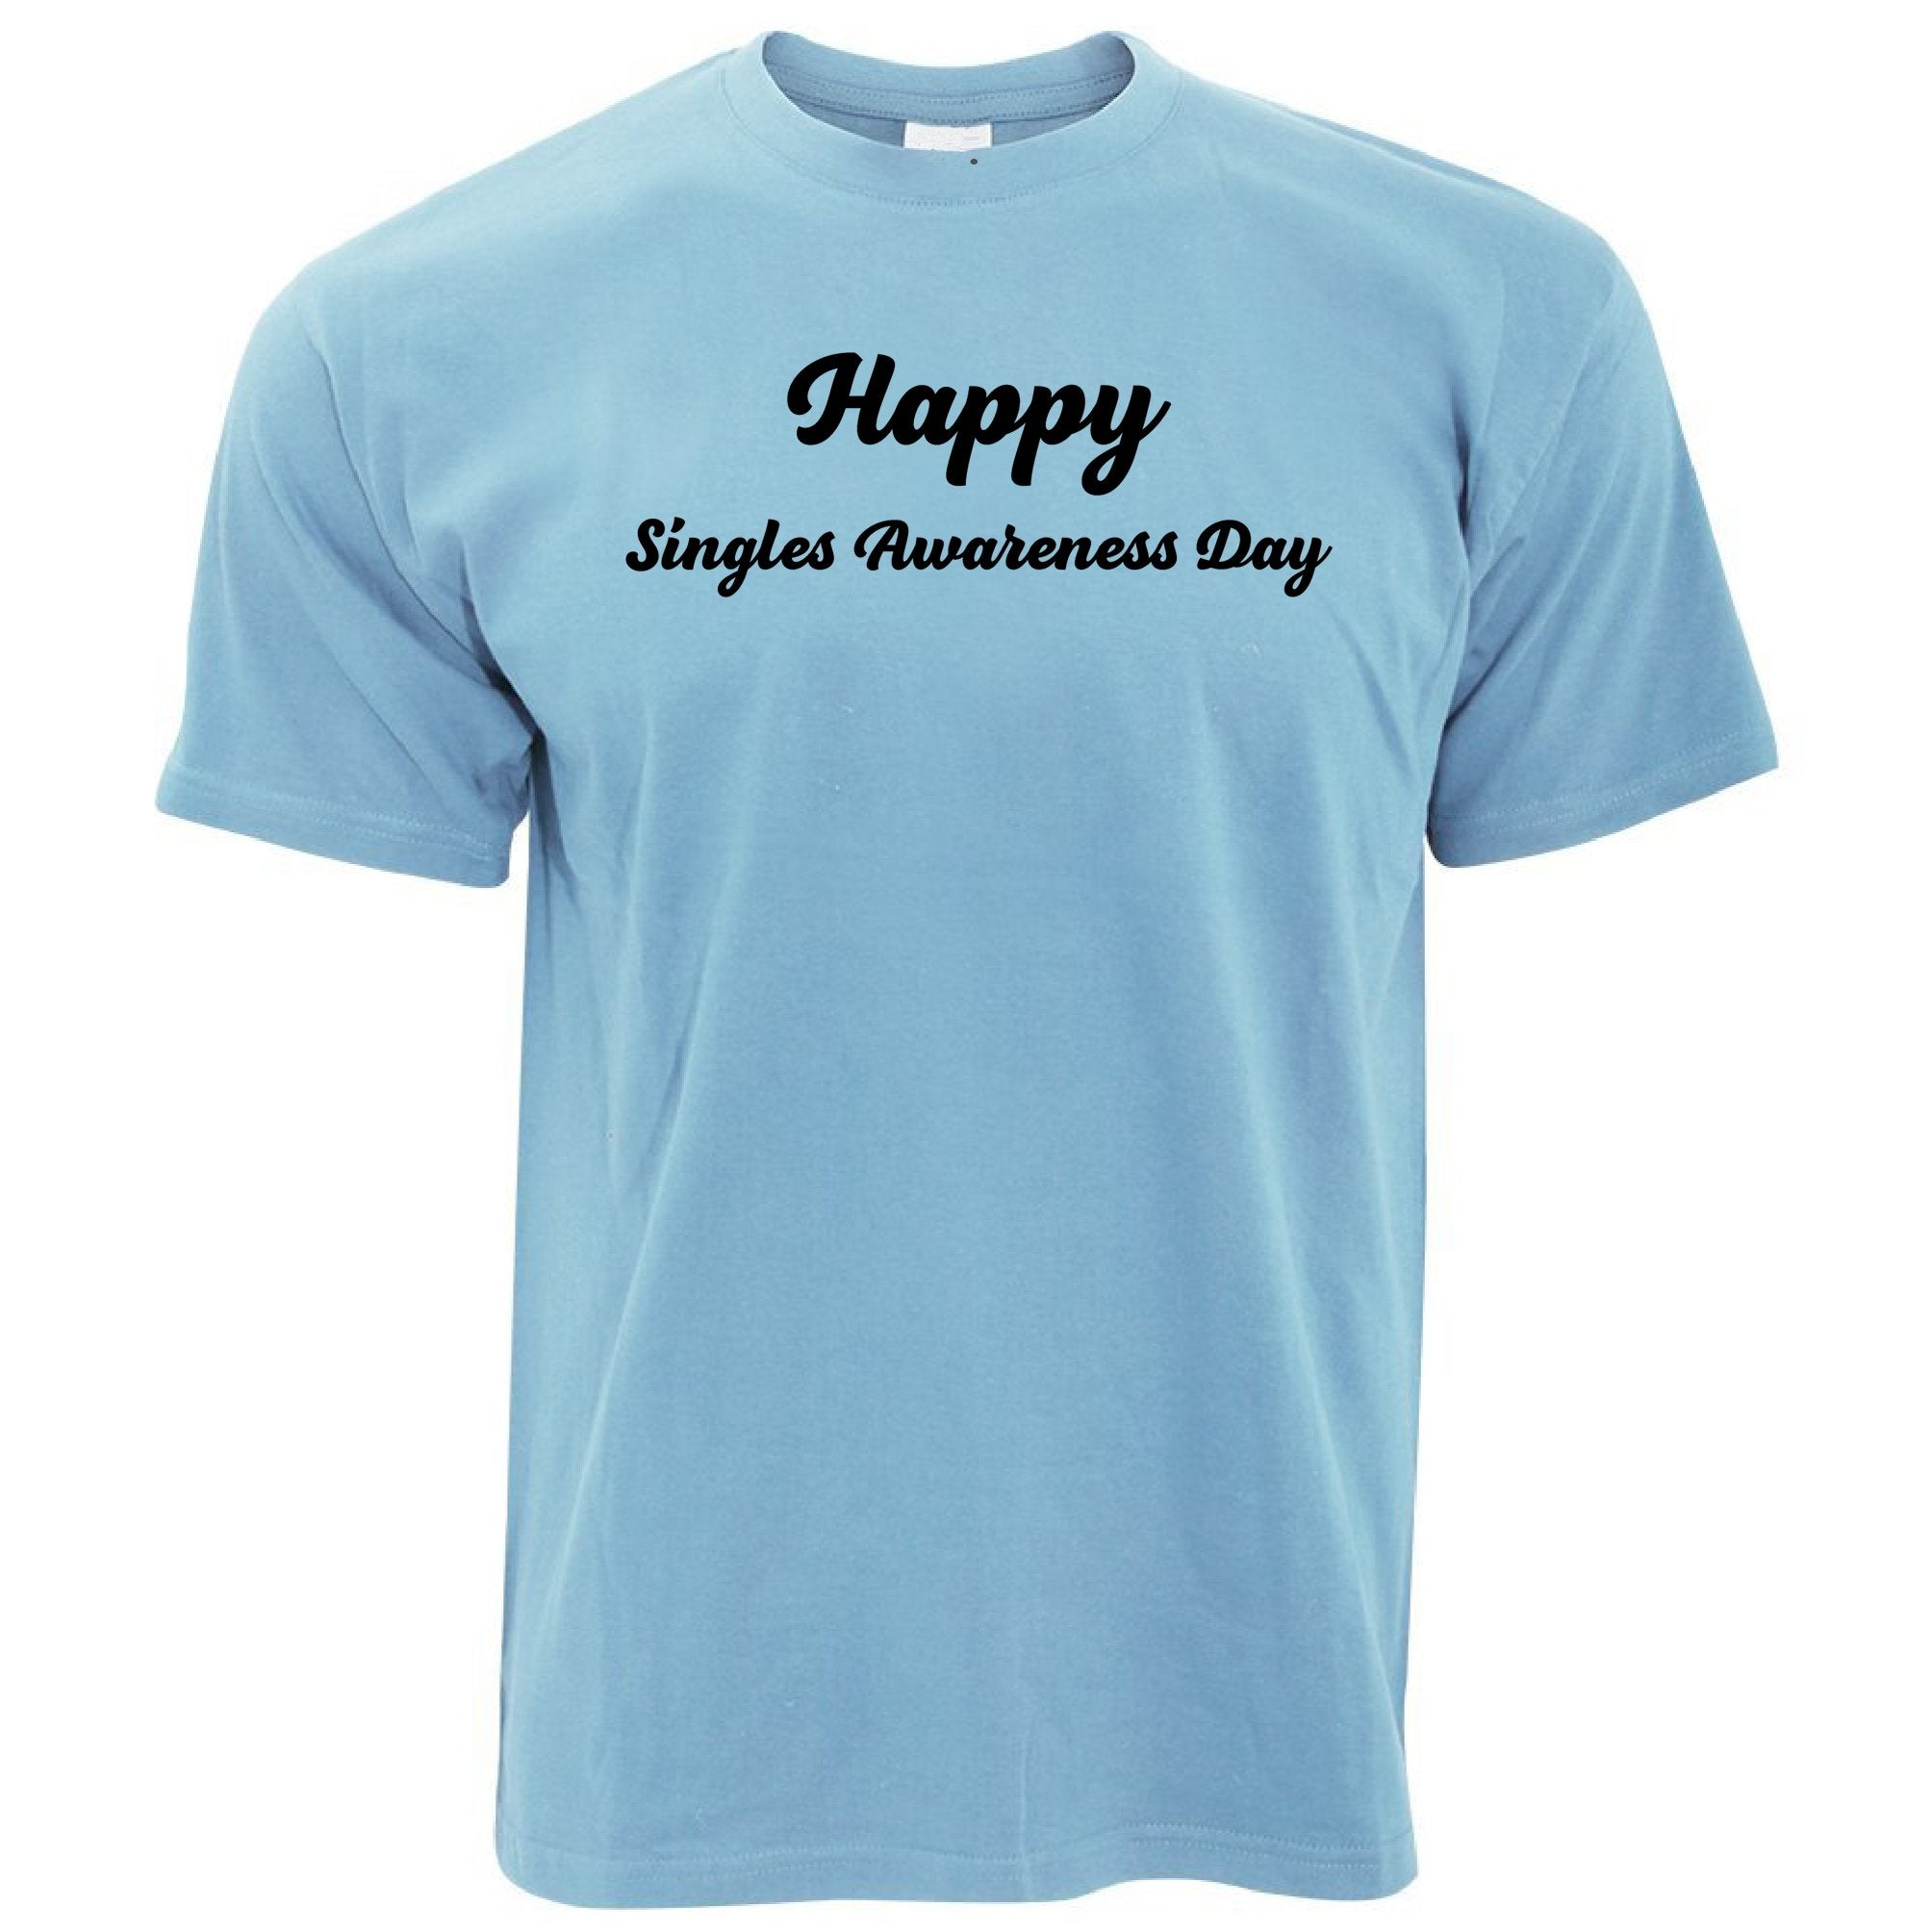 Joke Valentine's Day T Shirt Singles Awareness Day